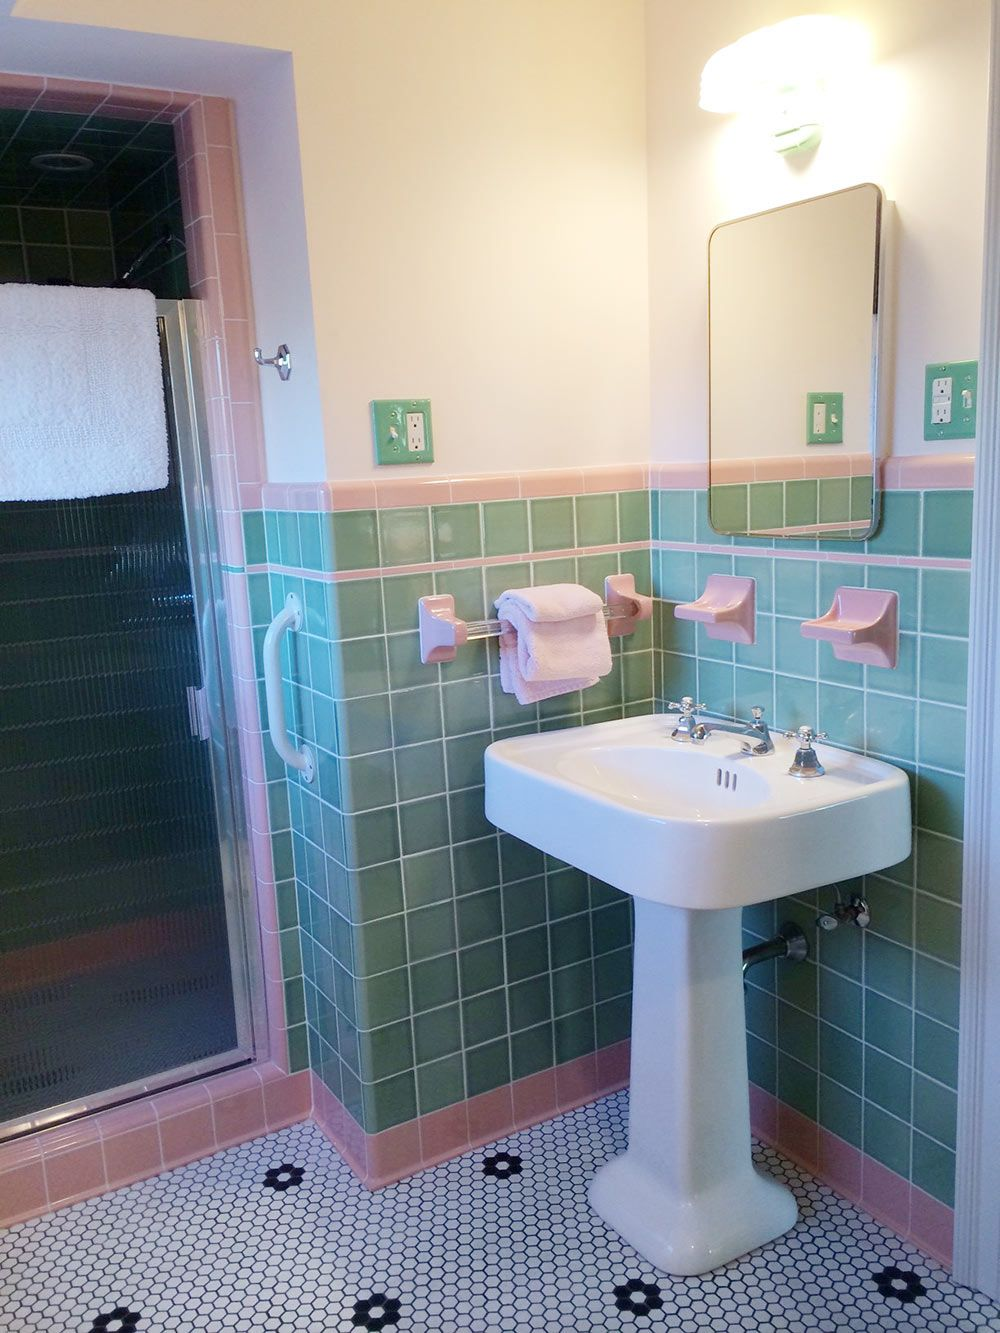 See Jane Design A Vintage Style Green And Pink Tile Bathroom For Her 1939 Brick Colonial House Retro Re Vintage Bathrooms Green Bathroom Pink Bathroom Tiles